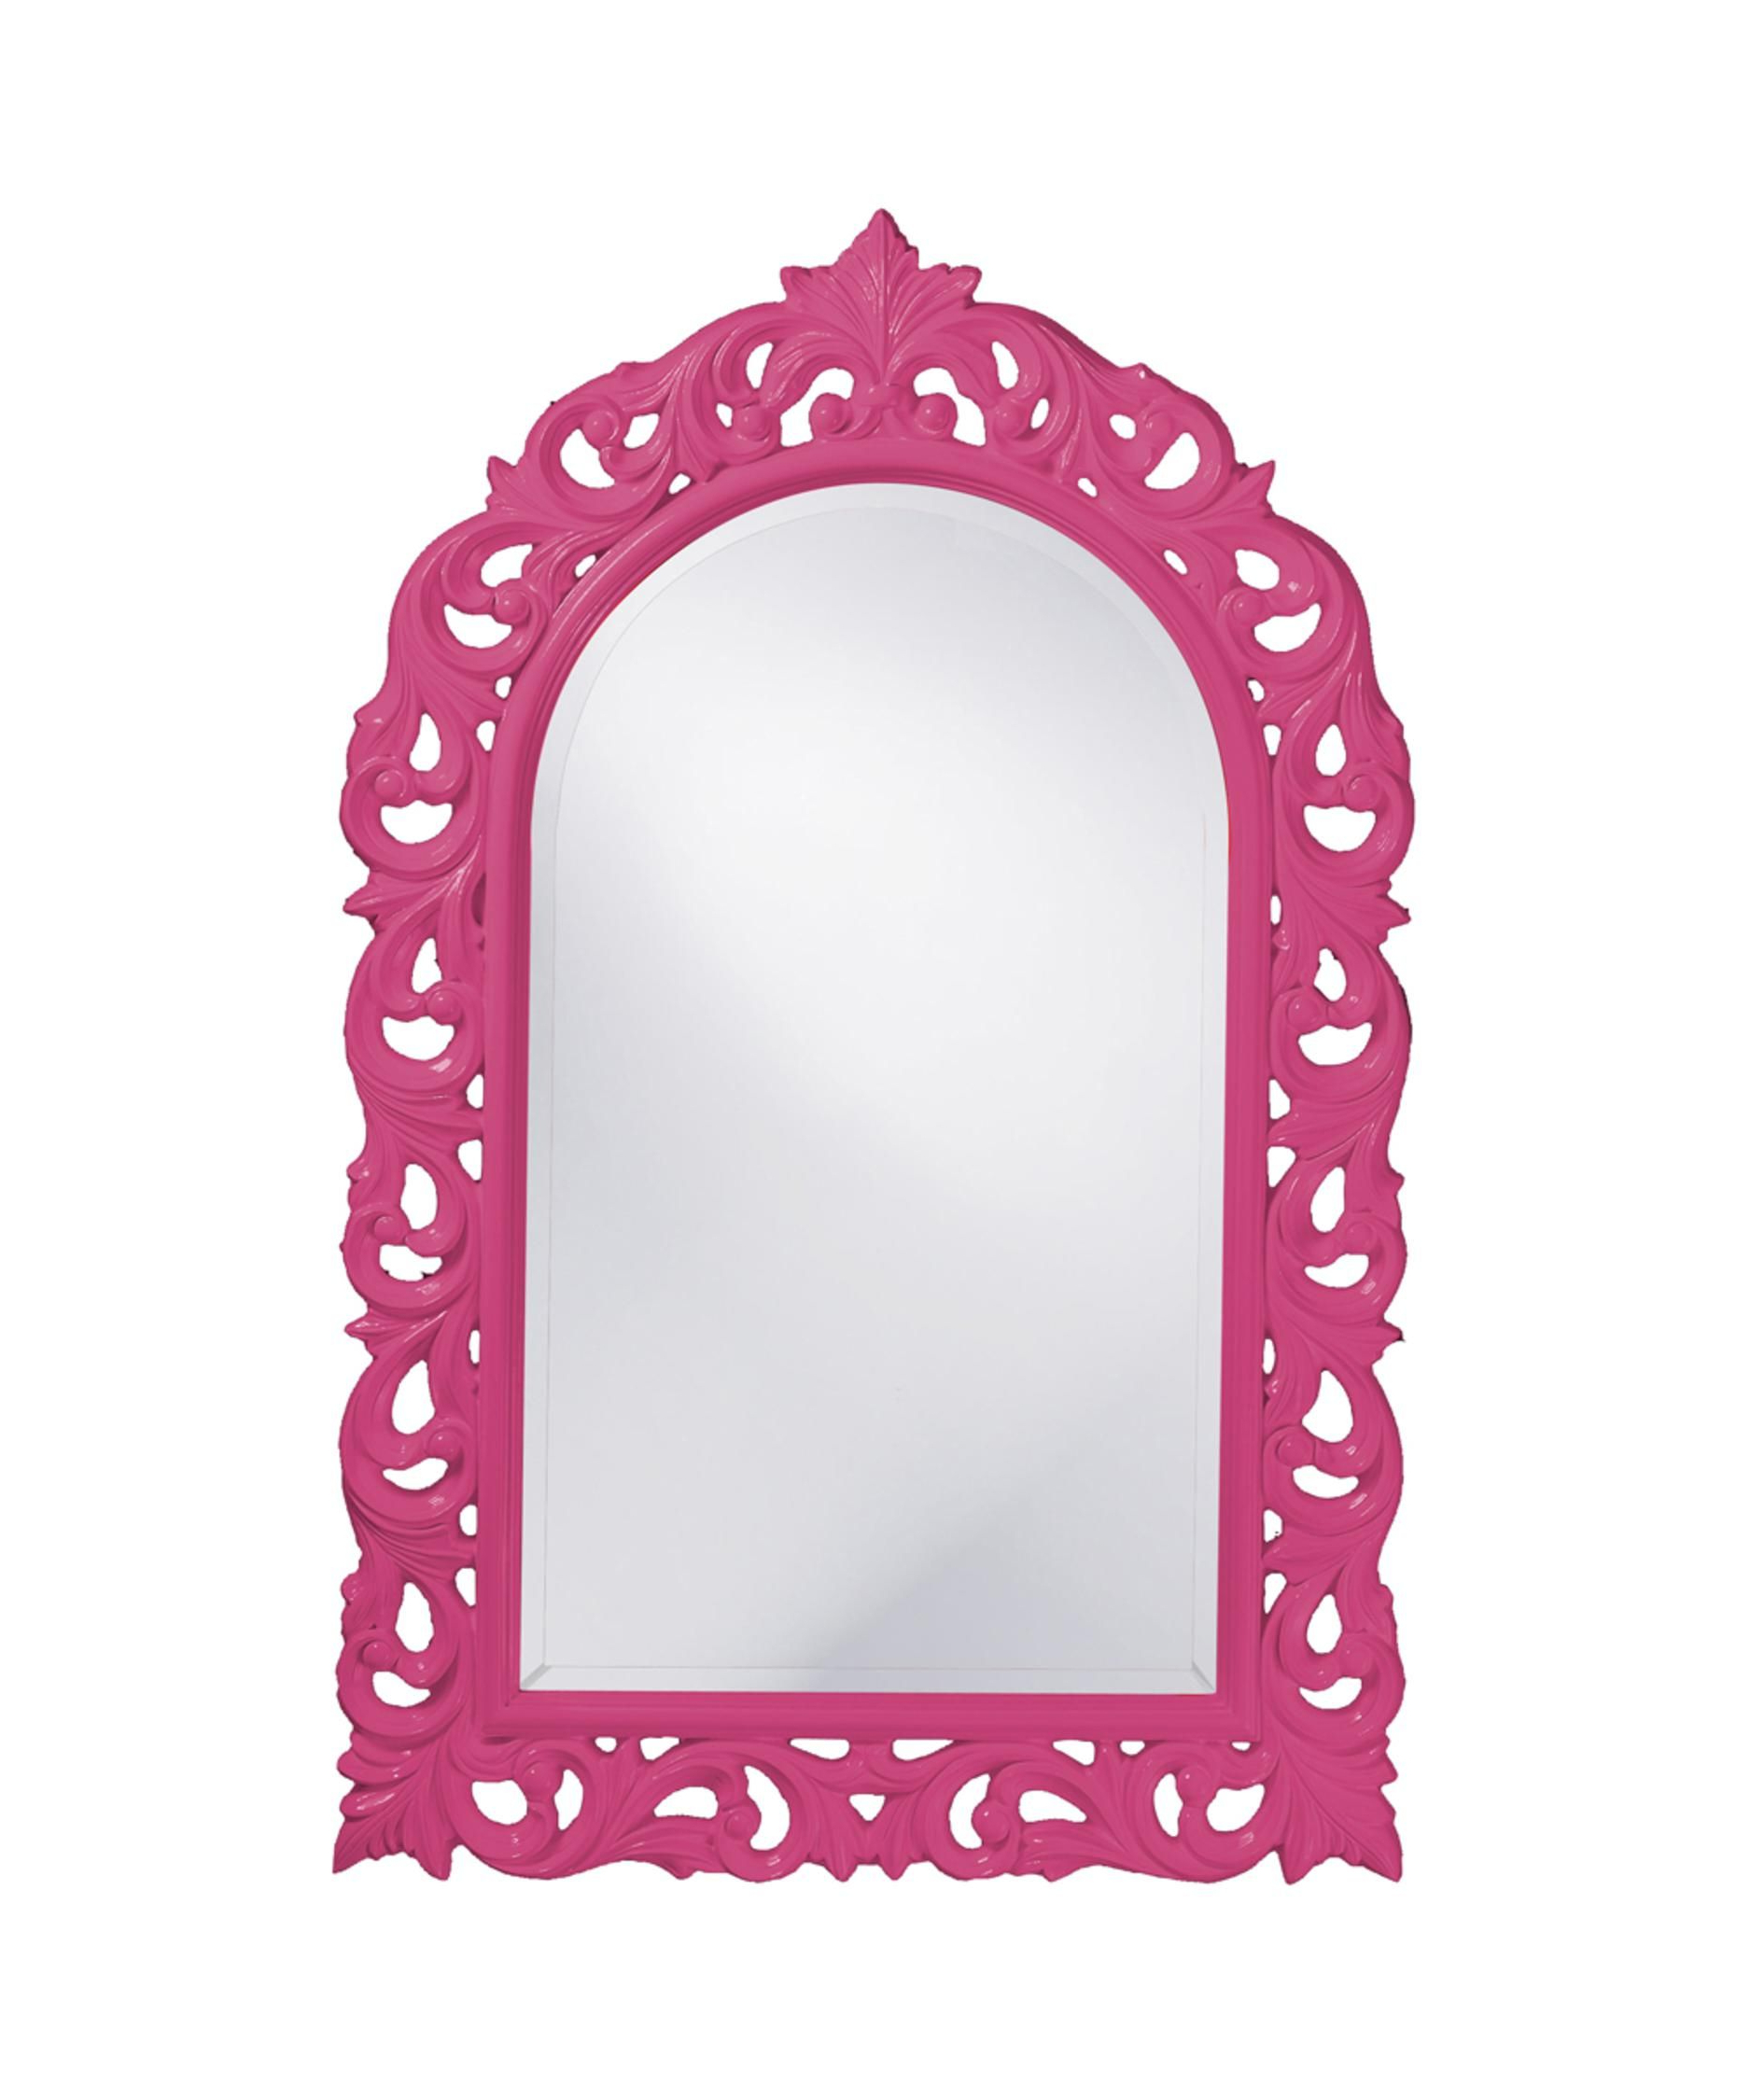 """Newest Pink Wall Mirrors With Orleans 30"""" Wall Mirror In Hot Pink: Wall Mirror In Hot Pink (View 11 of 20)"""